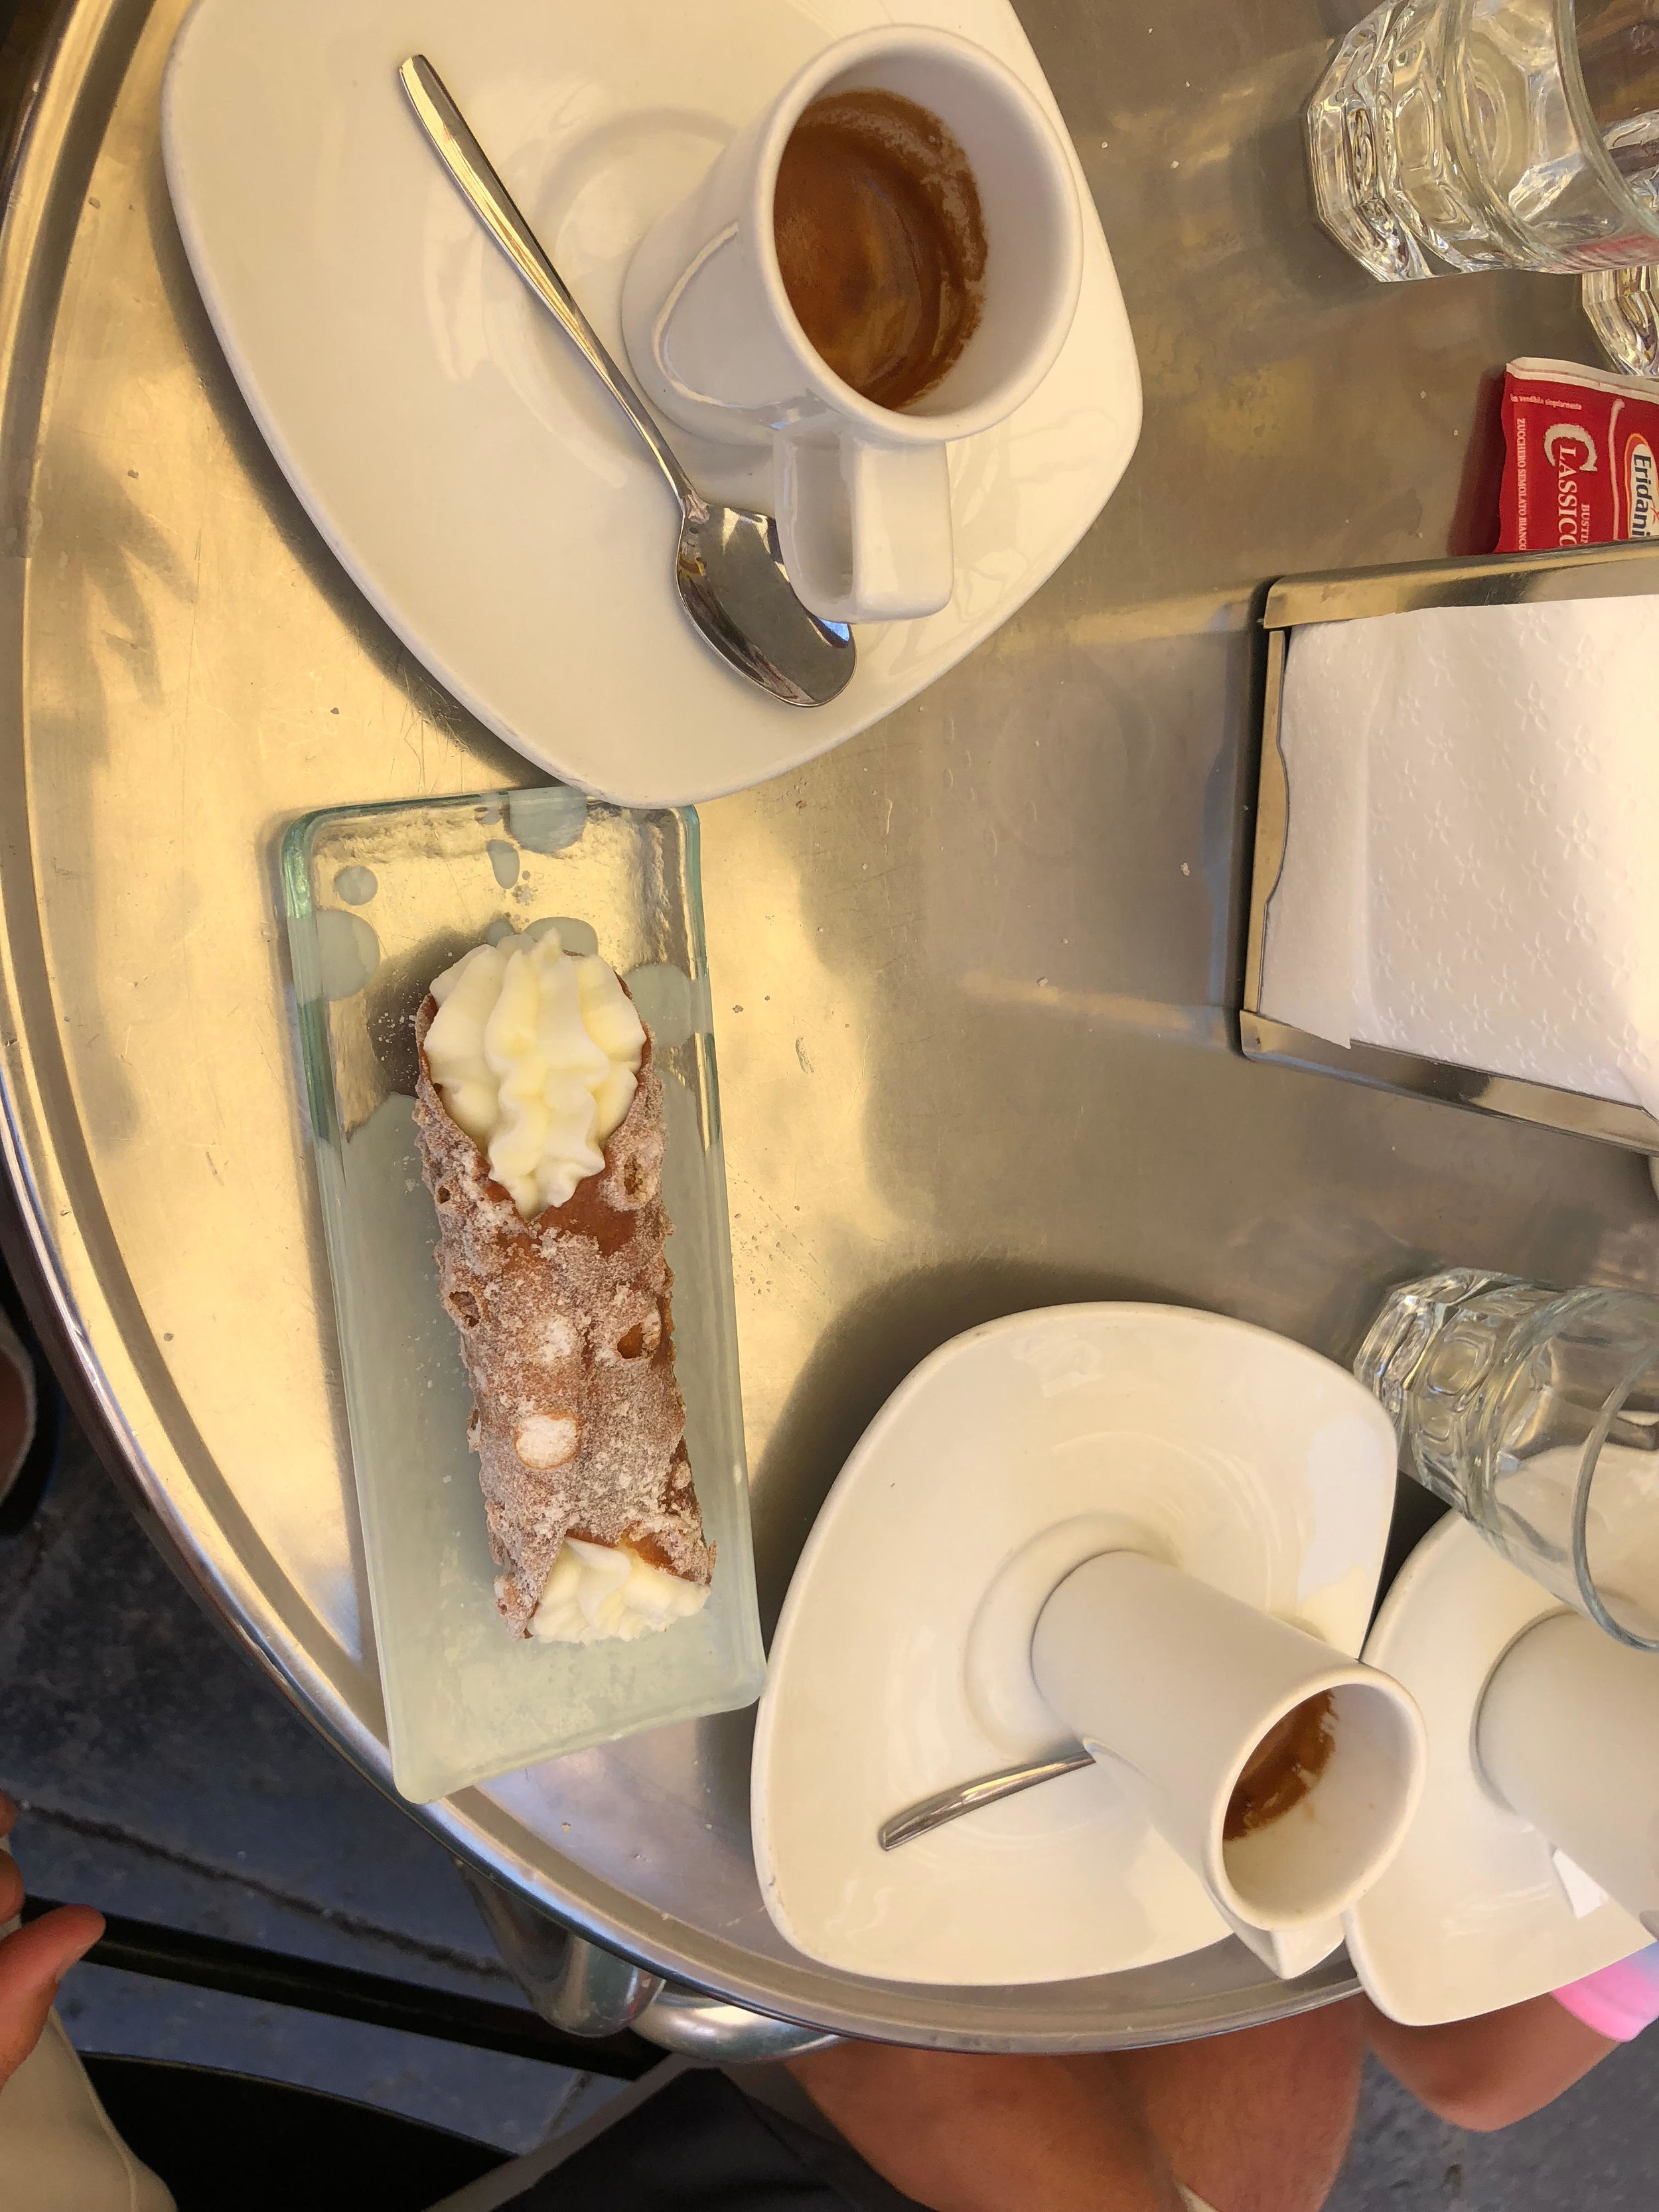 The world's most perfect cannolo, paired perfectly with bitter espresso at Caffe Sicilia.